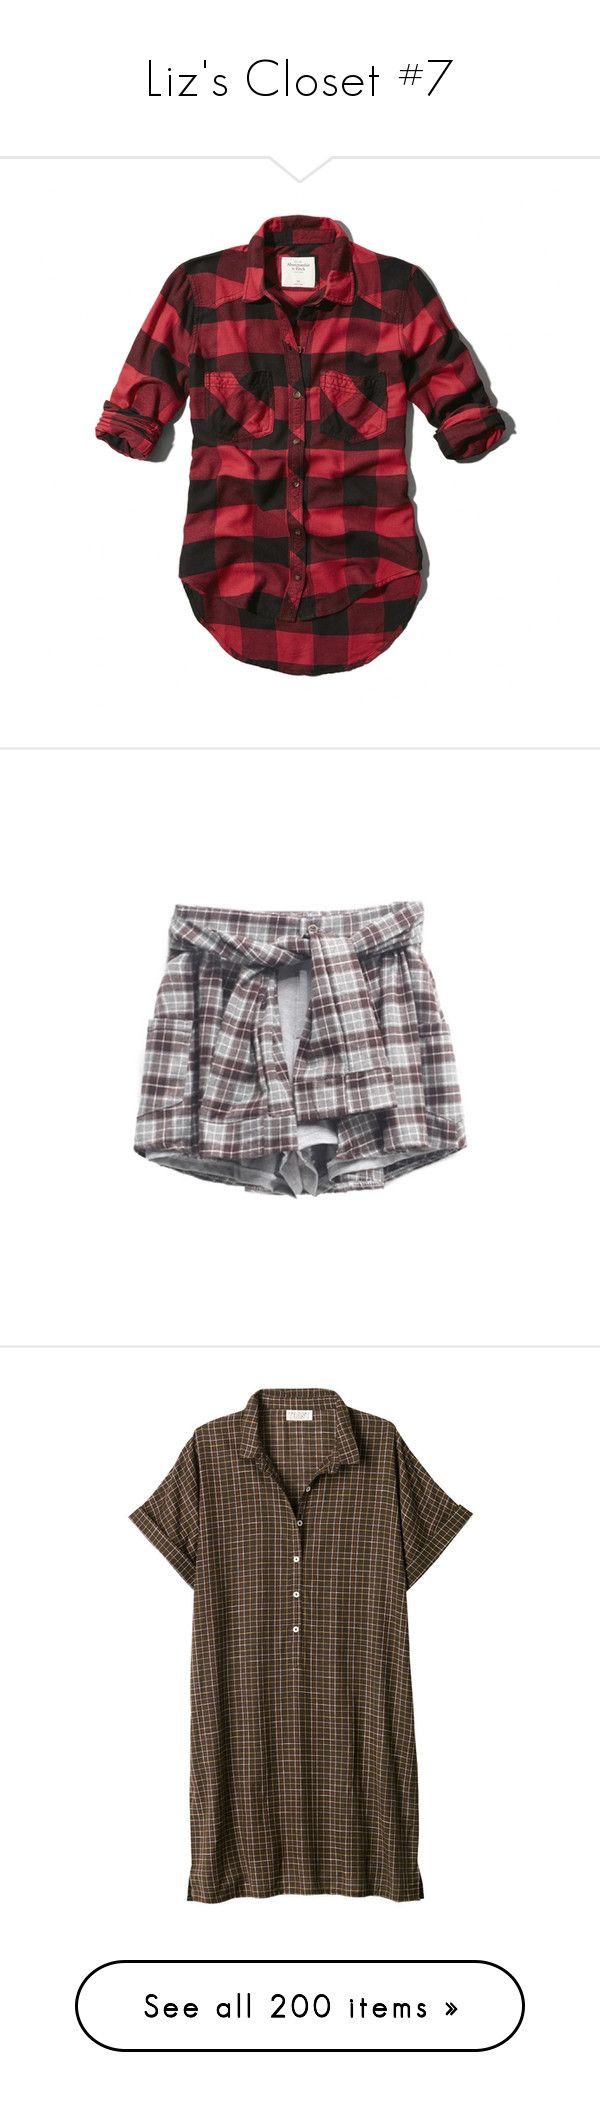 """""""Liz's Closet #7"""" by miss-brownstone06 ❤ liked on Polyvore featuring tops, shirts, flannels, plaid, red and black plaid, plaid flannel shirt, vintage tops, vintage button down shirts, red and black button up shirt and vintage shirts"""